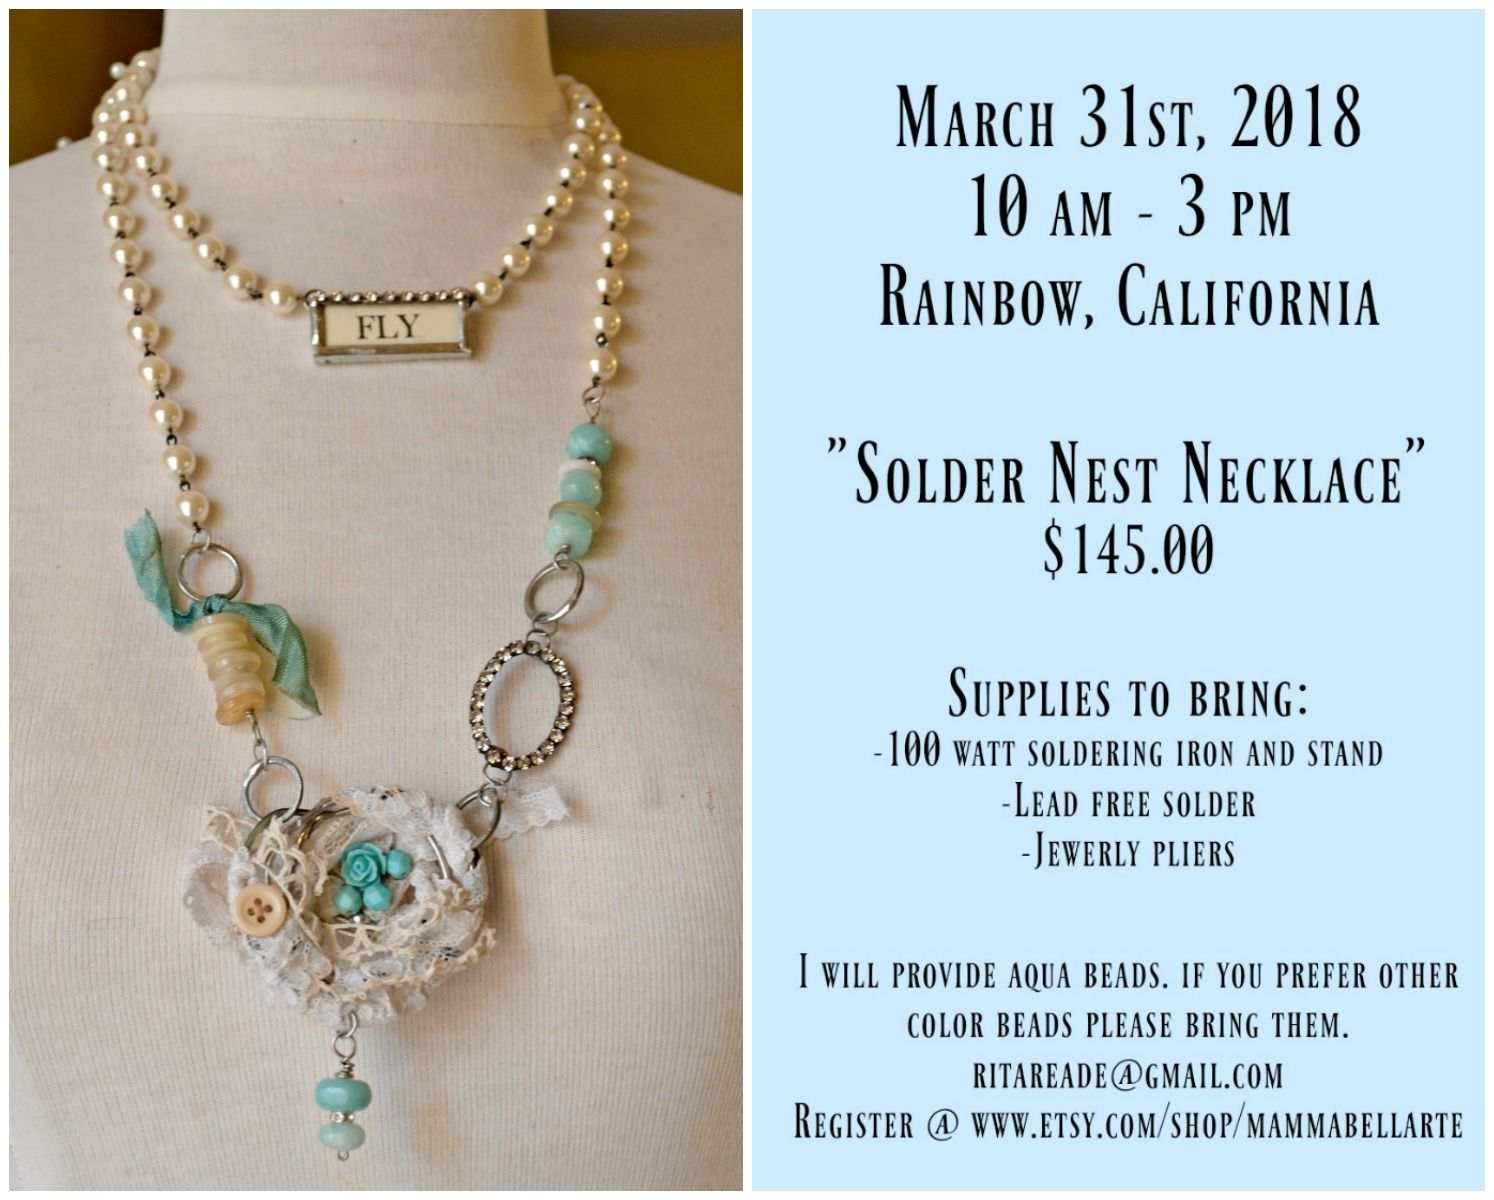 One space is now available Solder Nest Necklace March 31st